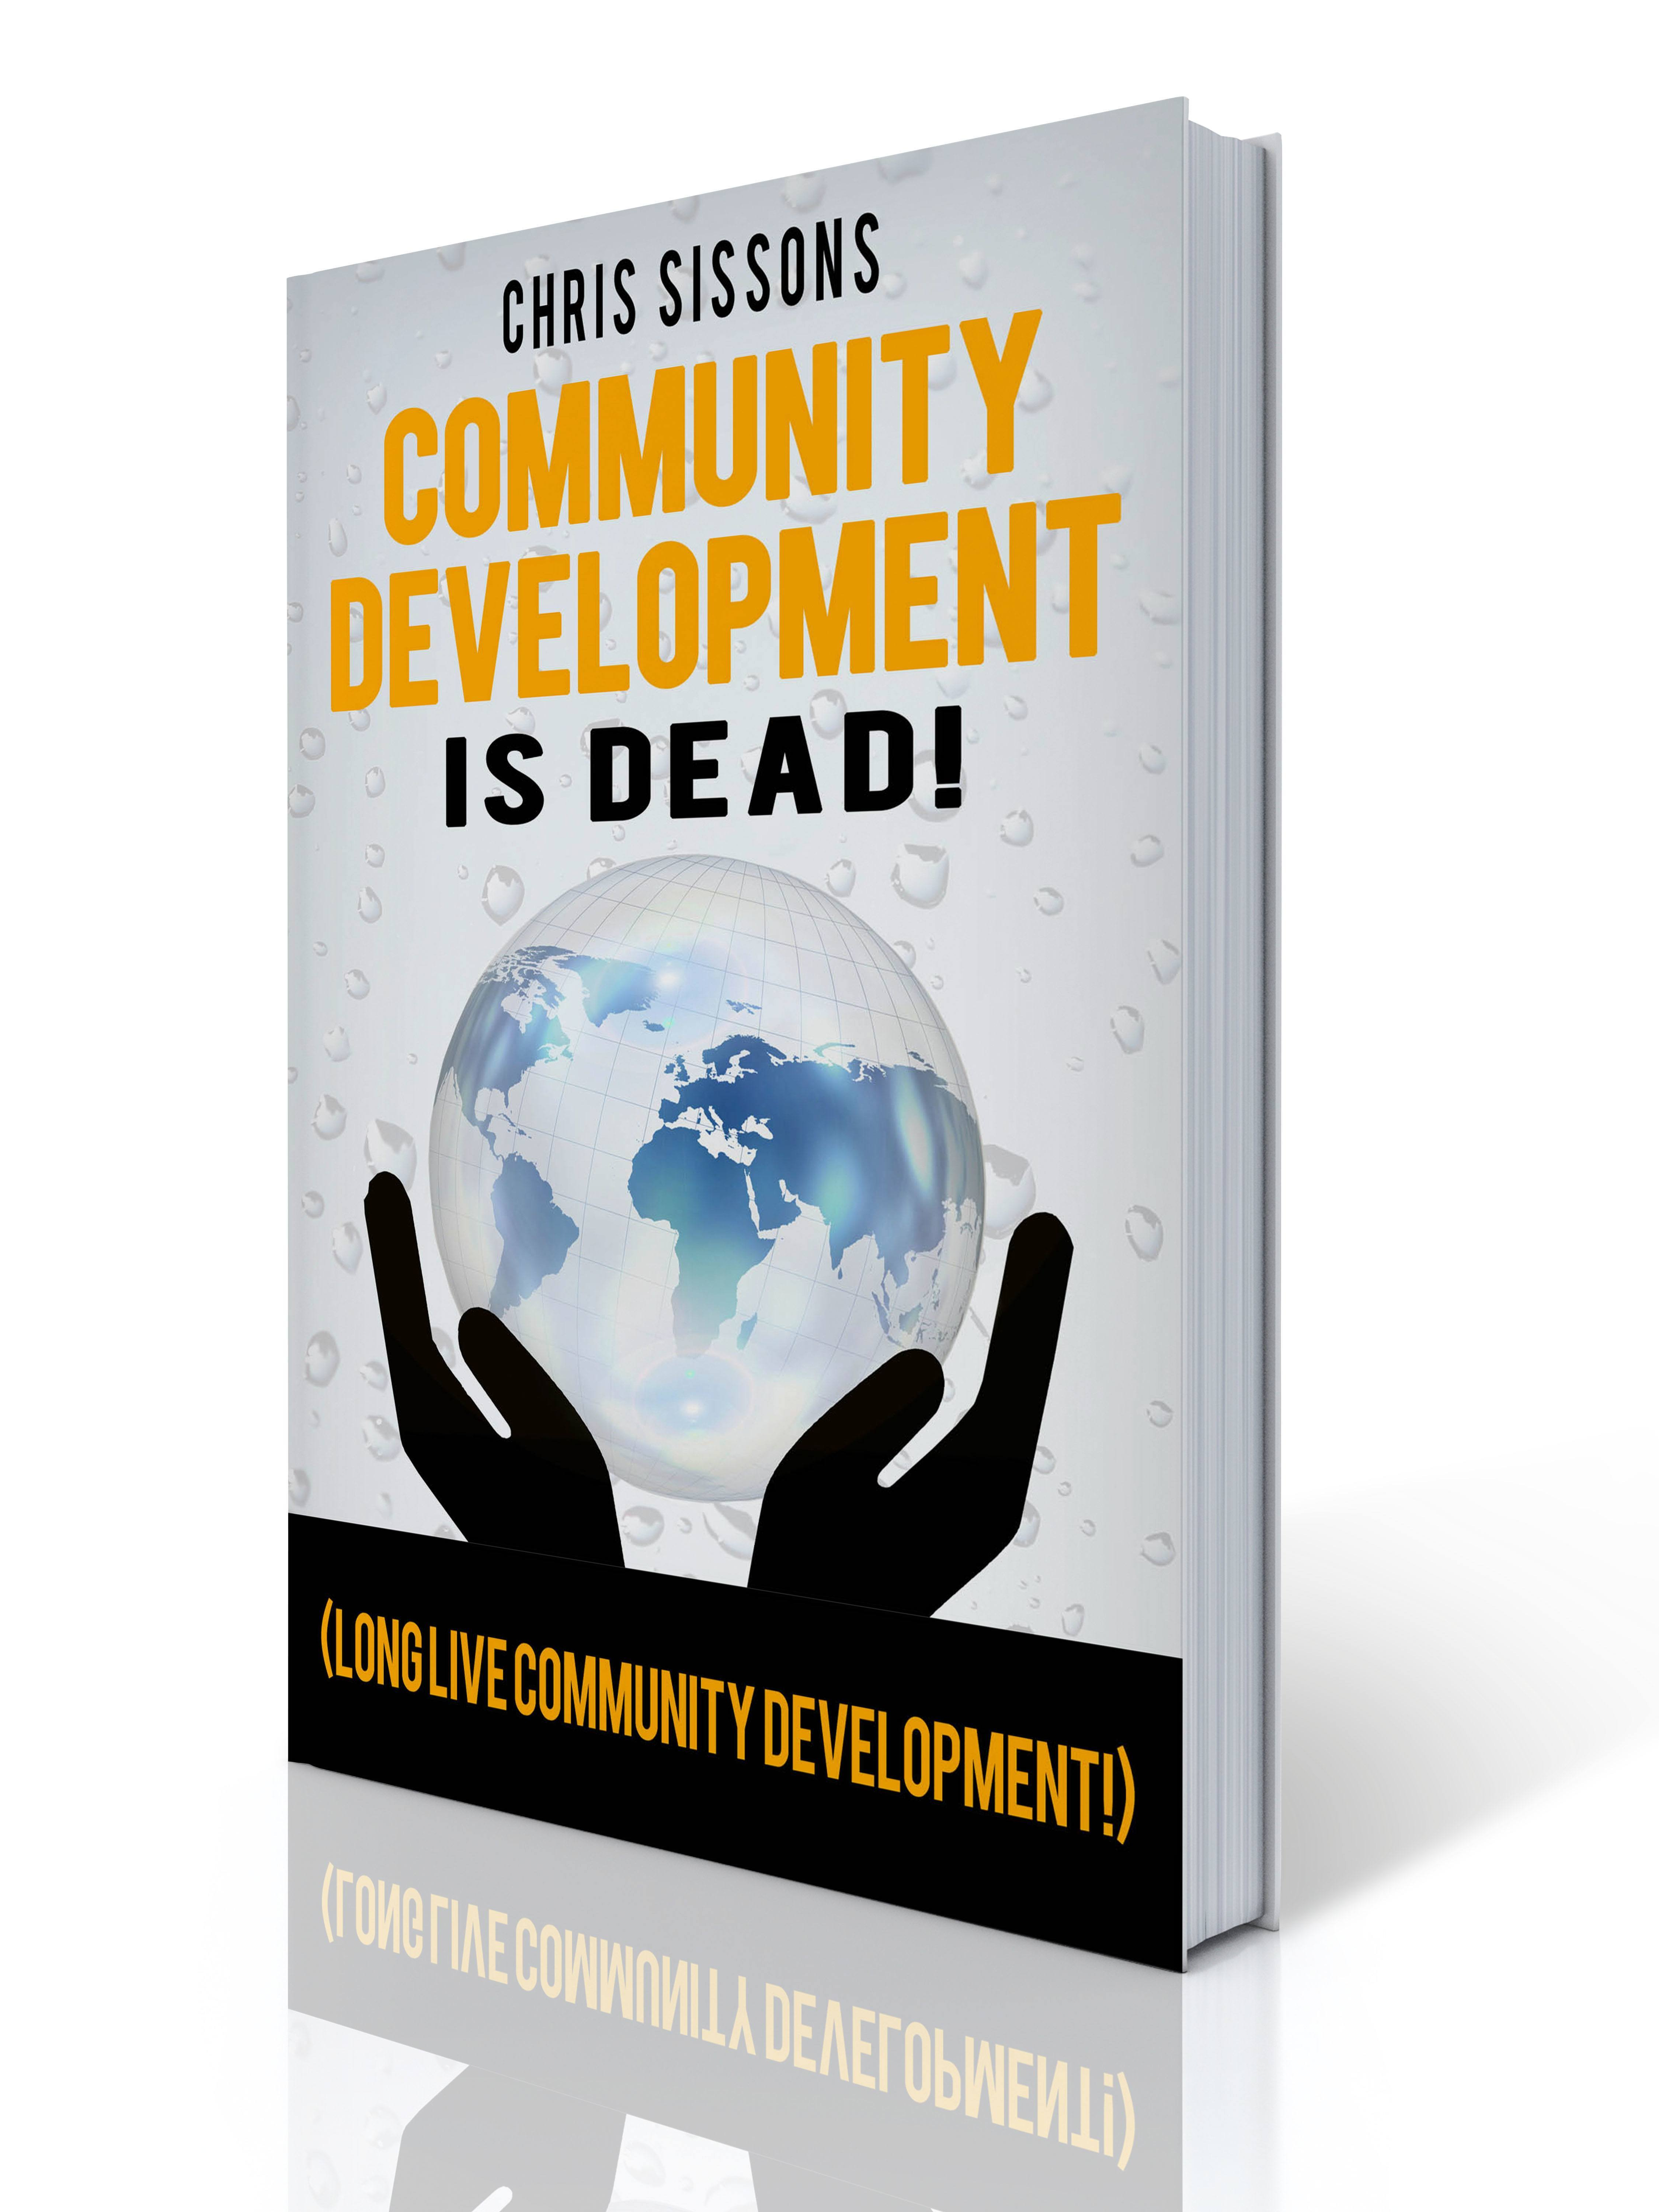 Community Development is Dead! Long Live Community Development by Chris Sissons